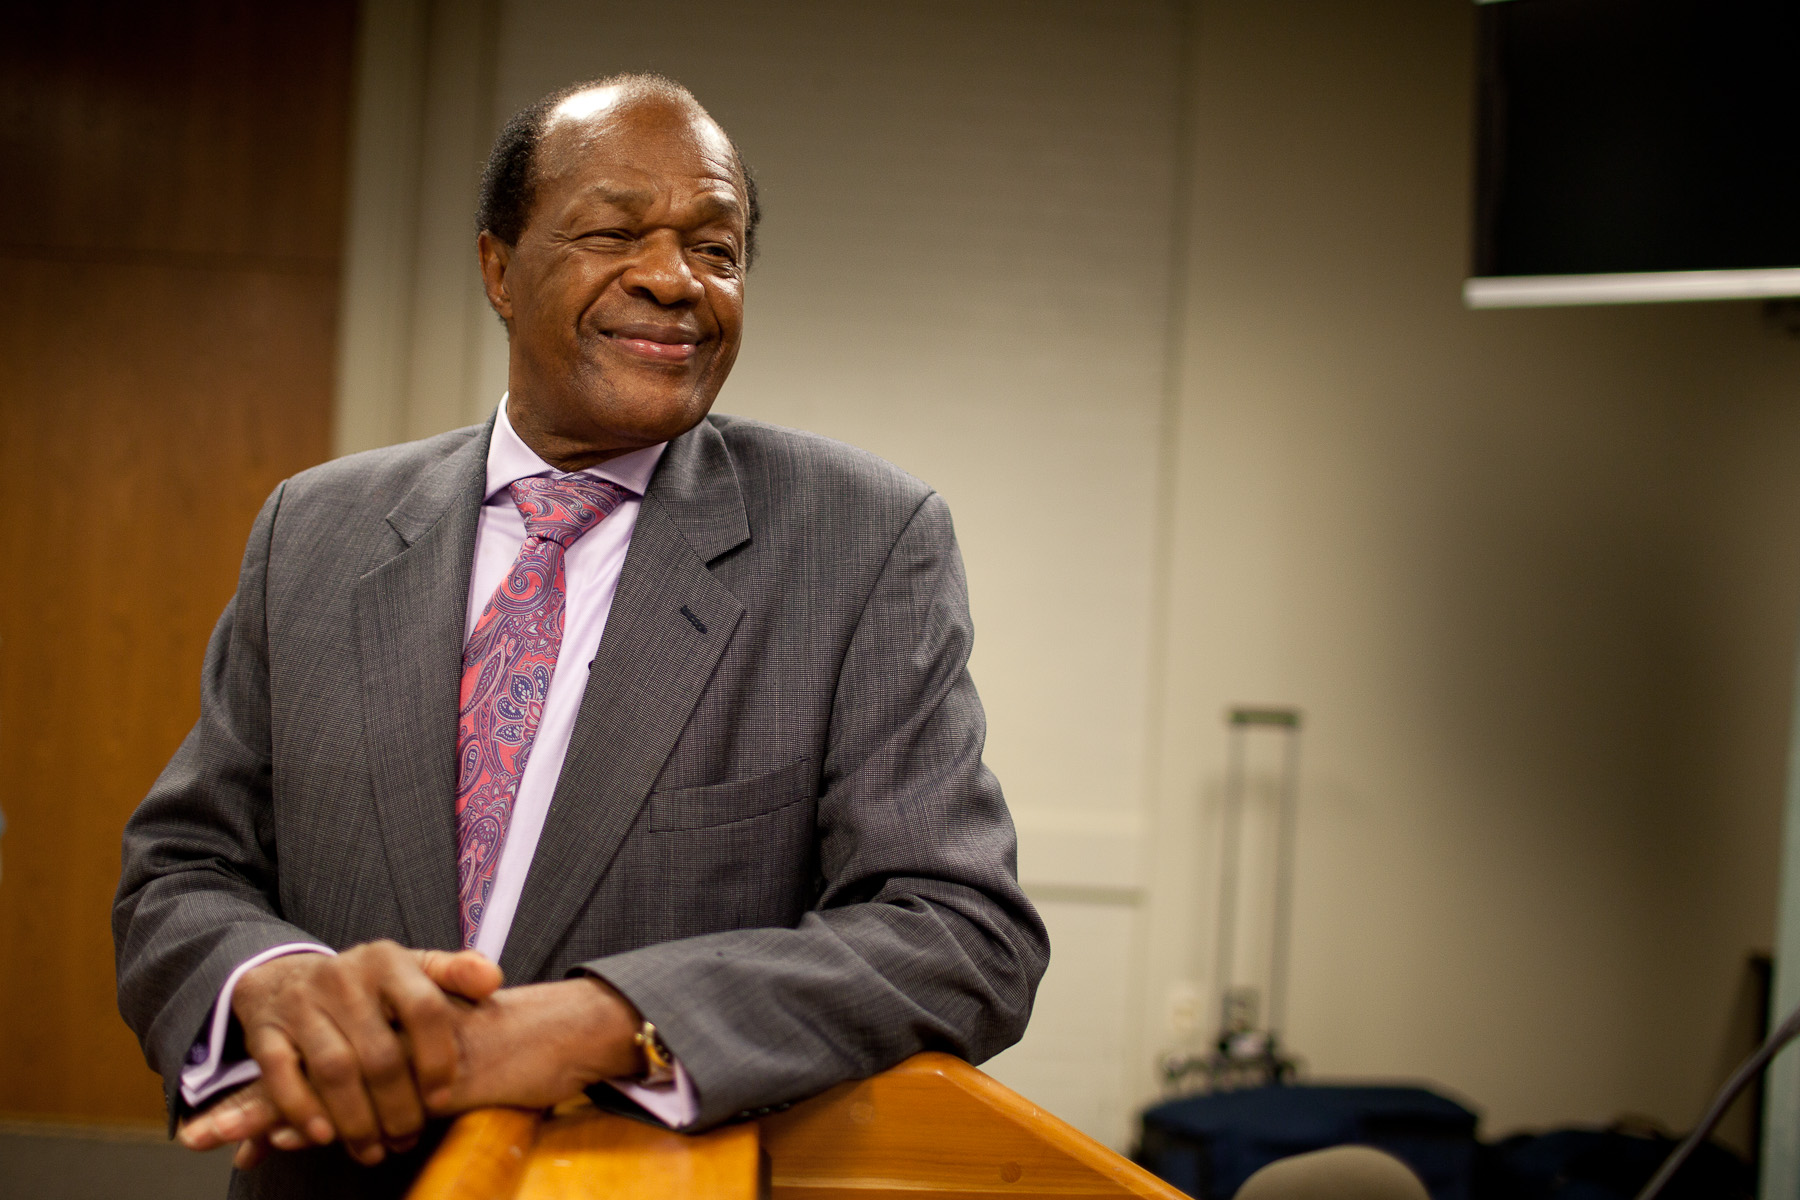 D.C. Council Member Marion Barry gives a news conference in Washington D.C. on Aug. 2, 2010.